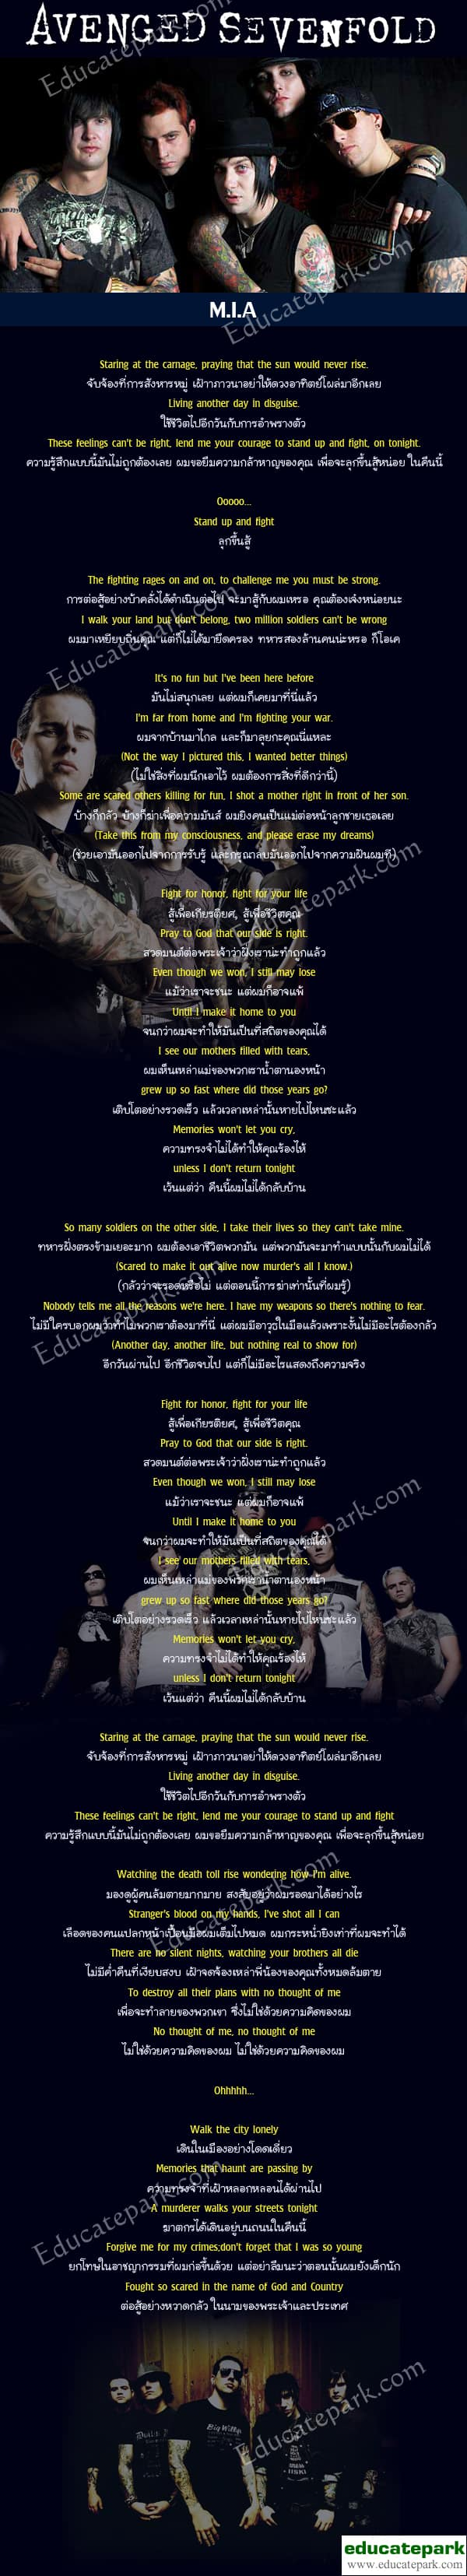 แปลเพลง M.I.A - Avenged Sevenfold